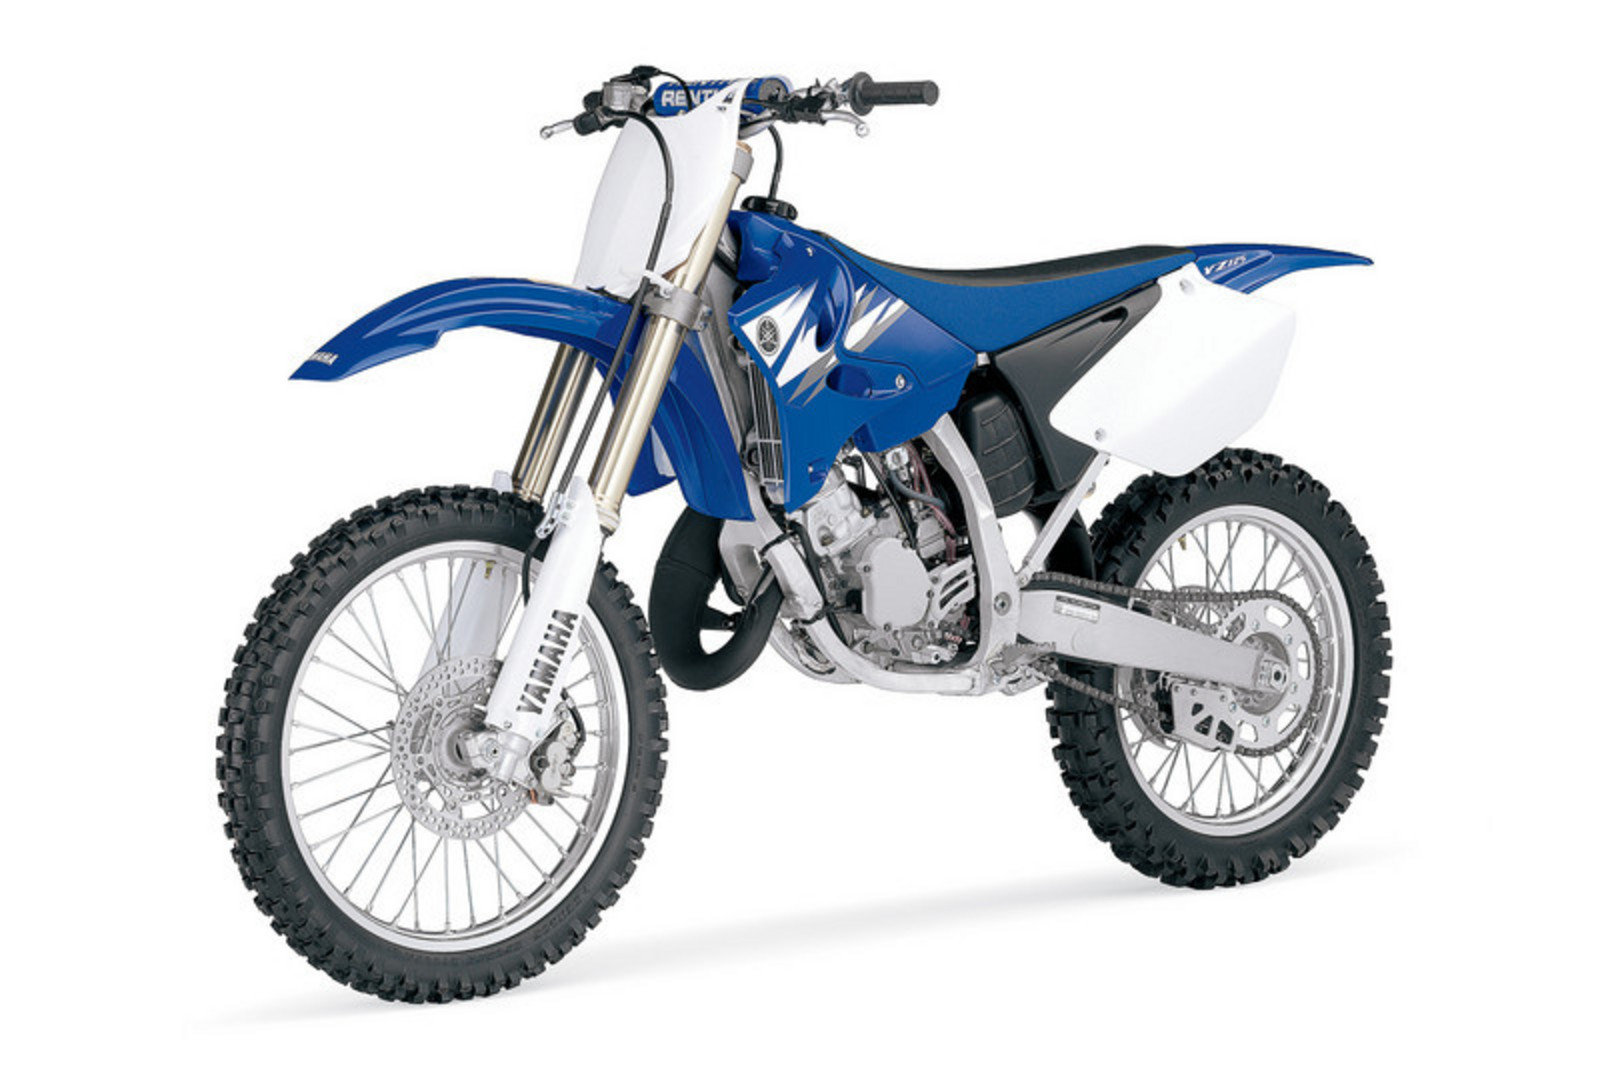 How fast does a Yamaha PW80 go - answers.com